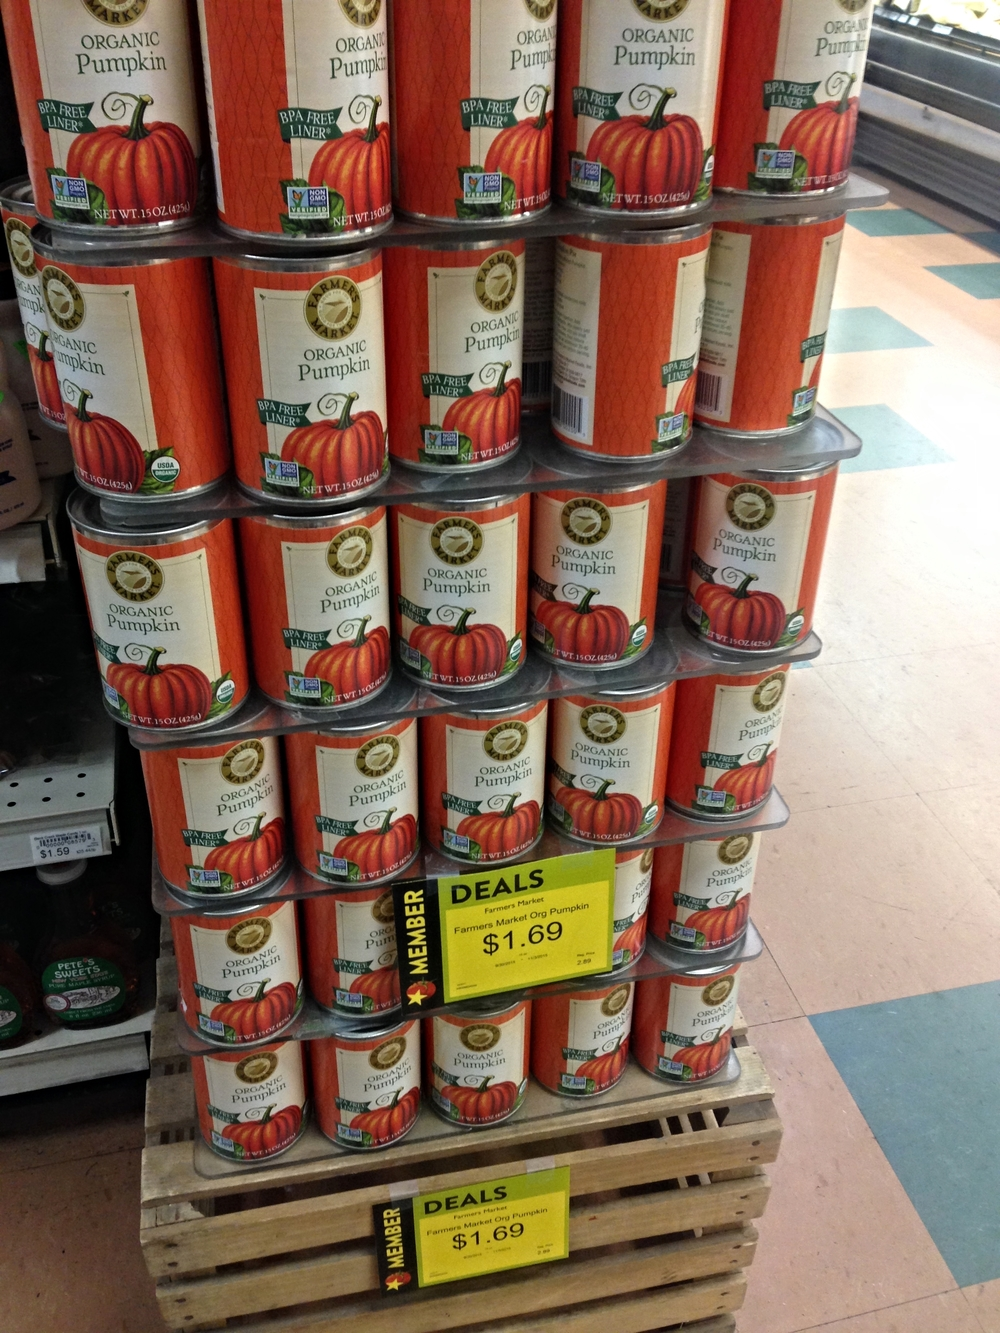 See? A tower of organic pumpkin puree, on sale for $1.69 each!